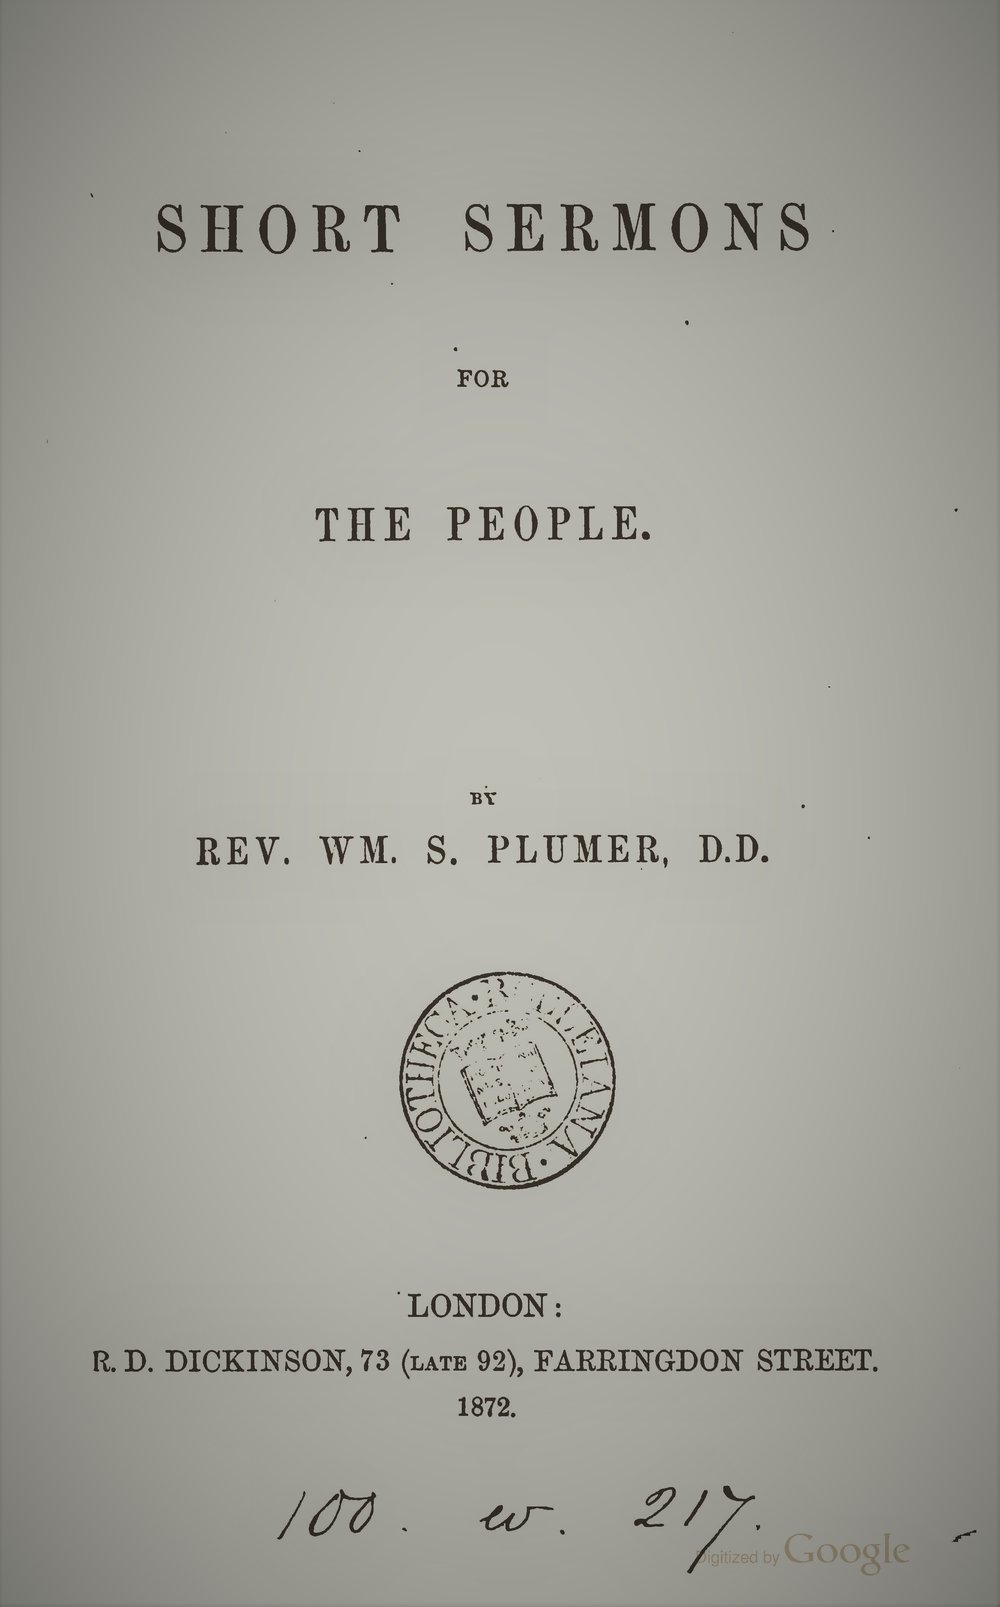 Plumer, Short Sermons for the People.jpg